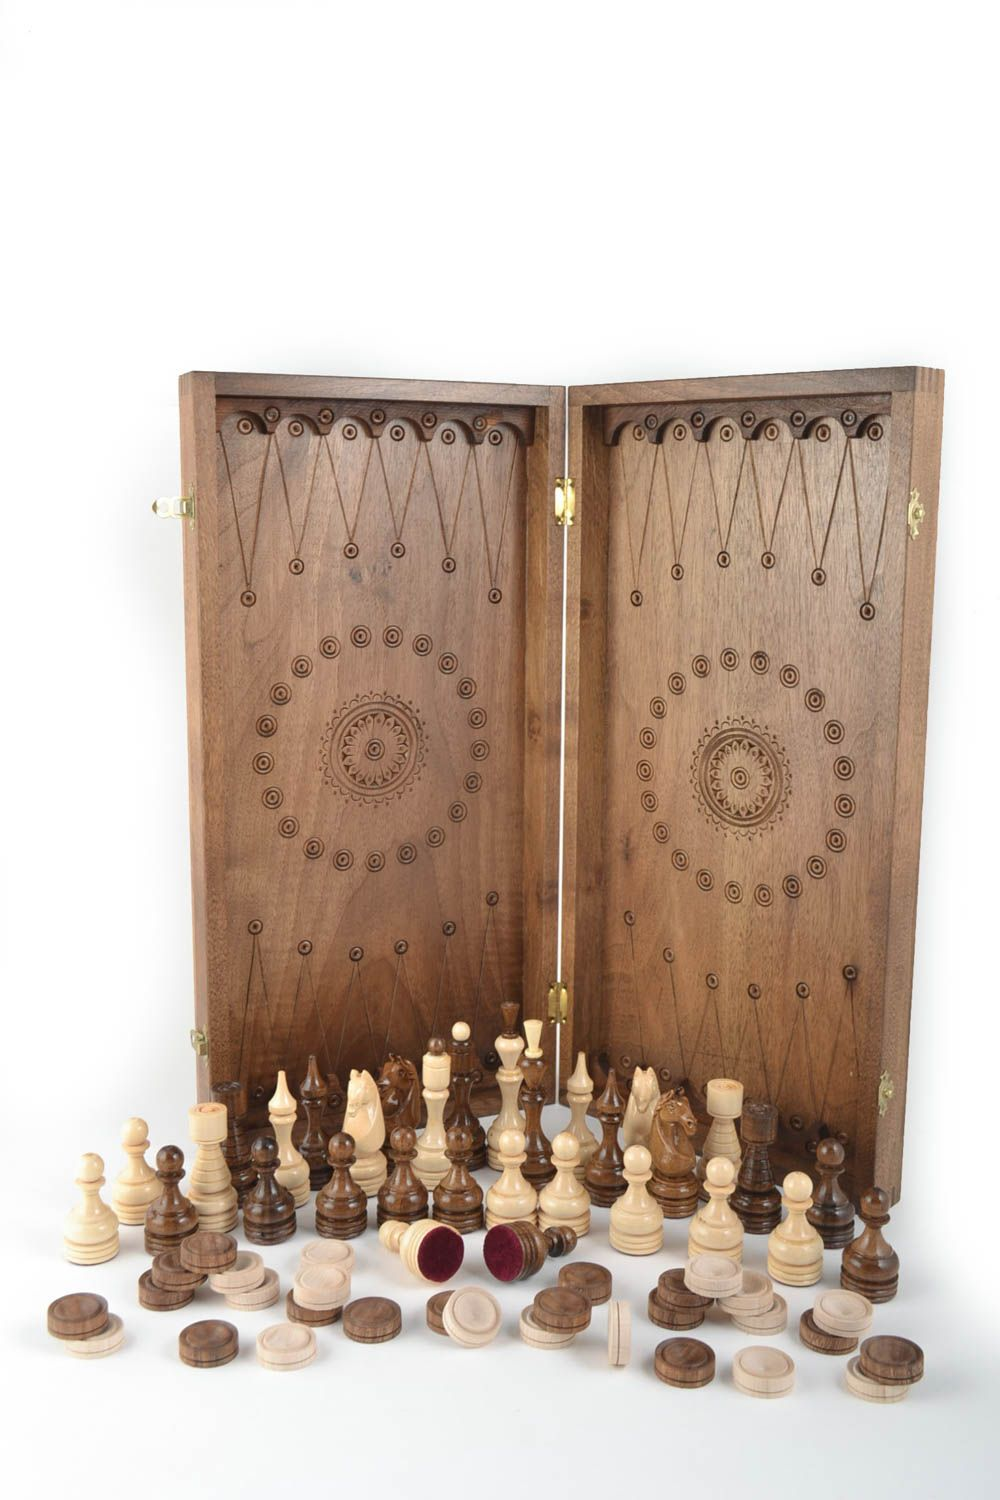 Handmade board games wooden chessboard chess pieces best gifts for him photo 2